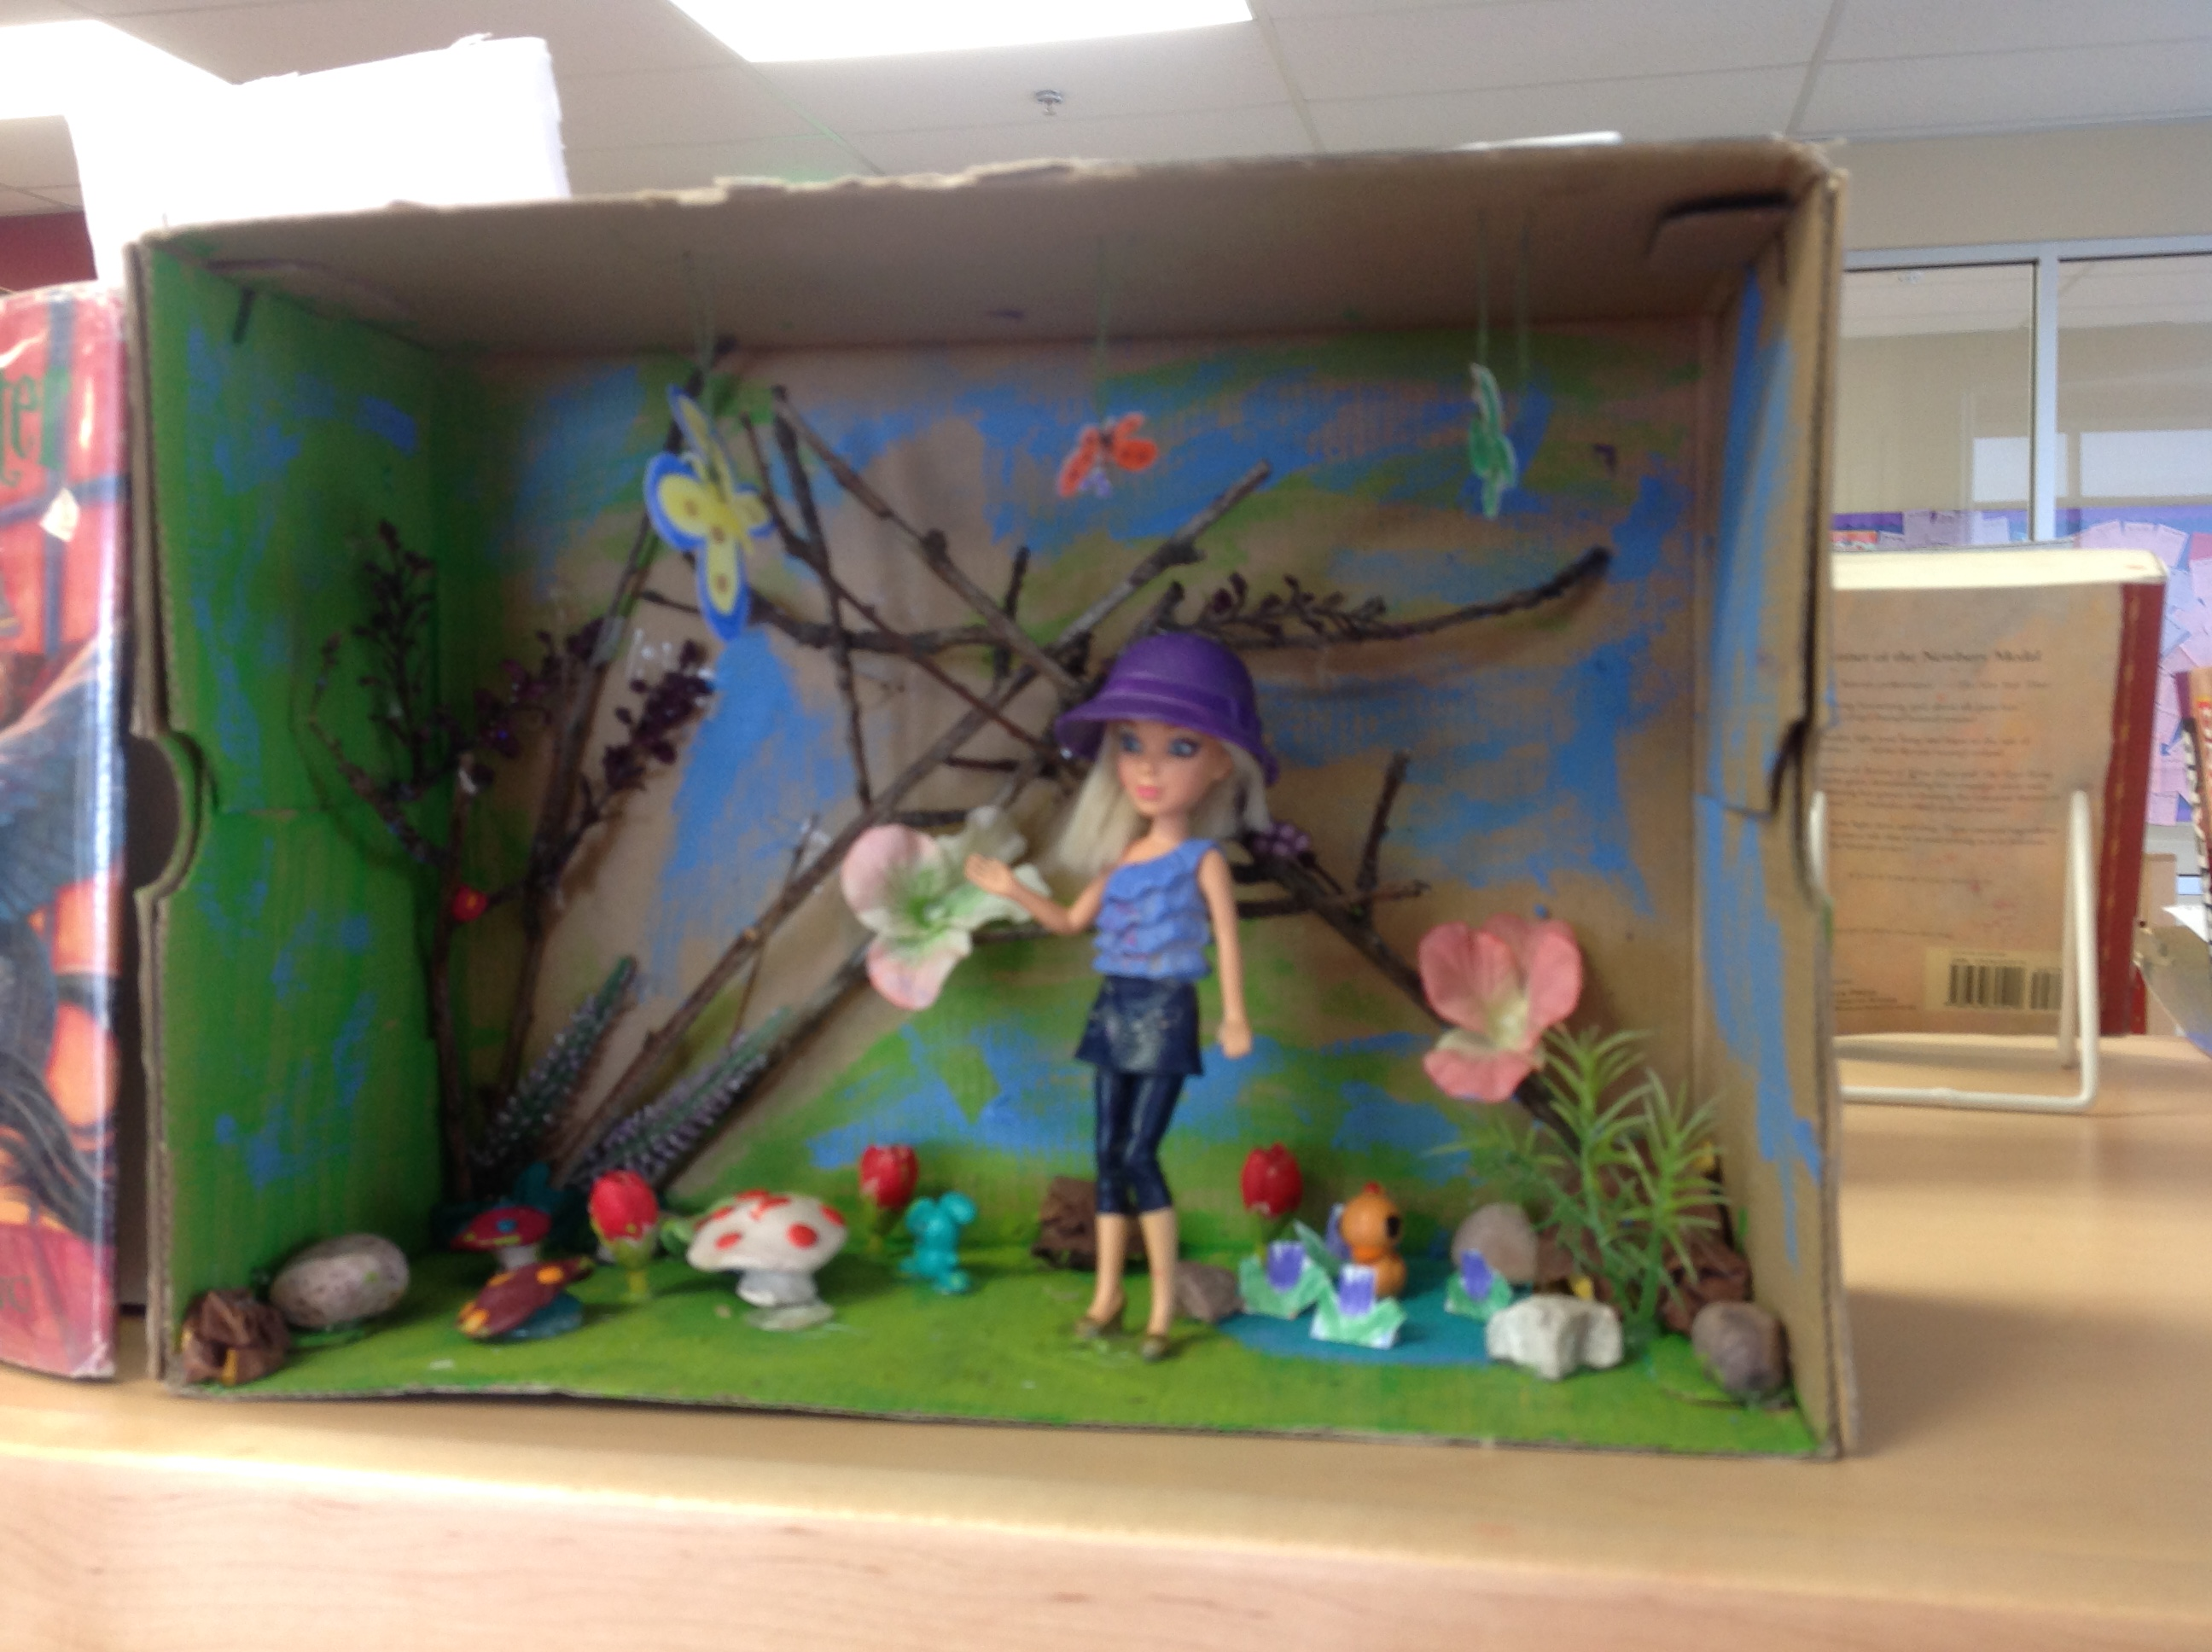 3rd grade book report diorama 10 beautiful book dioramas putting your fourth grade project to shame  3  dune by frank herbert deep in the human unconscious is a.